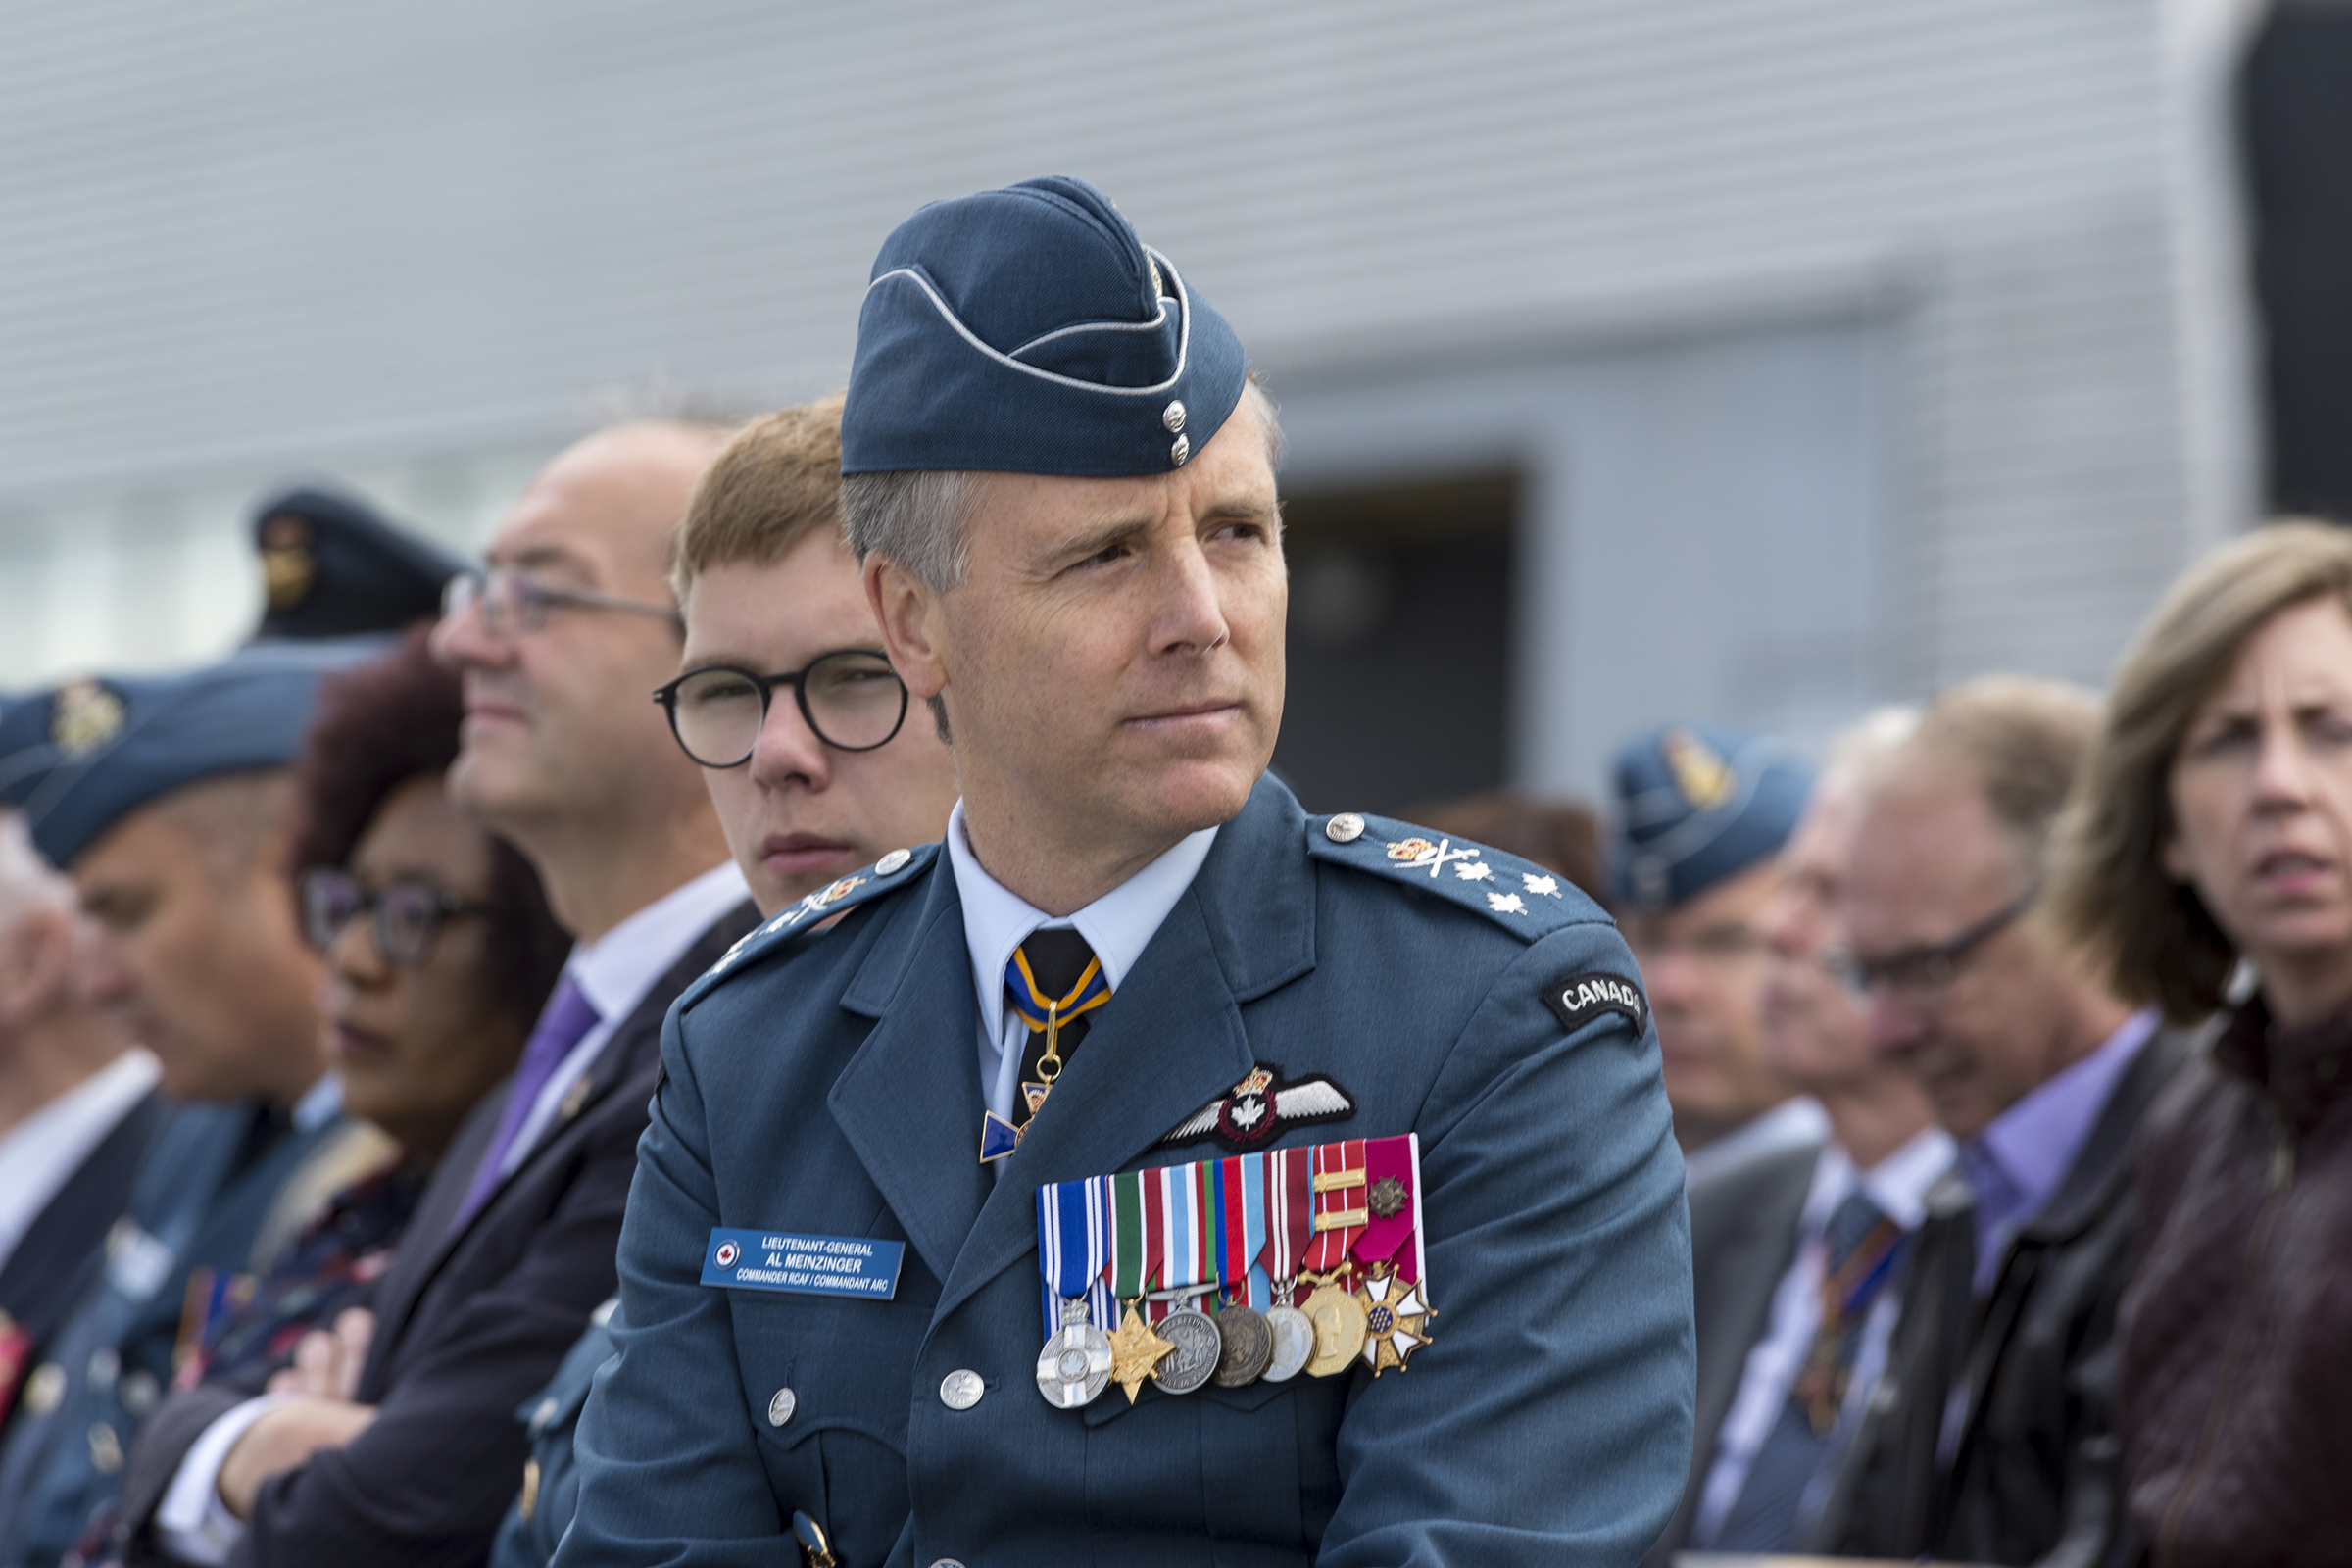 Le lieutenant-général Al Meinzinger, commandant de l'Aviation royale canadienne, écoute attentivement l'allocution du capitaine de vaisseau Krzysztof Książek, attaché militaire de la Pologne, pendant la cérémonie commémorative nationale de la bataille d'Angleterre tenue le 15 septembre 2019, au Musée de l'aviation et de l'espace du Canada, à Ottawa. PHOTO : Aviateur Jacob Hanlon, FA01-2019-0008-031